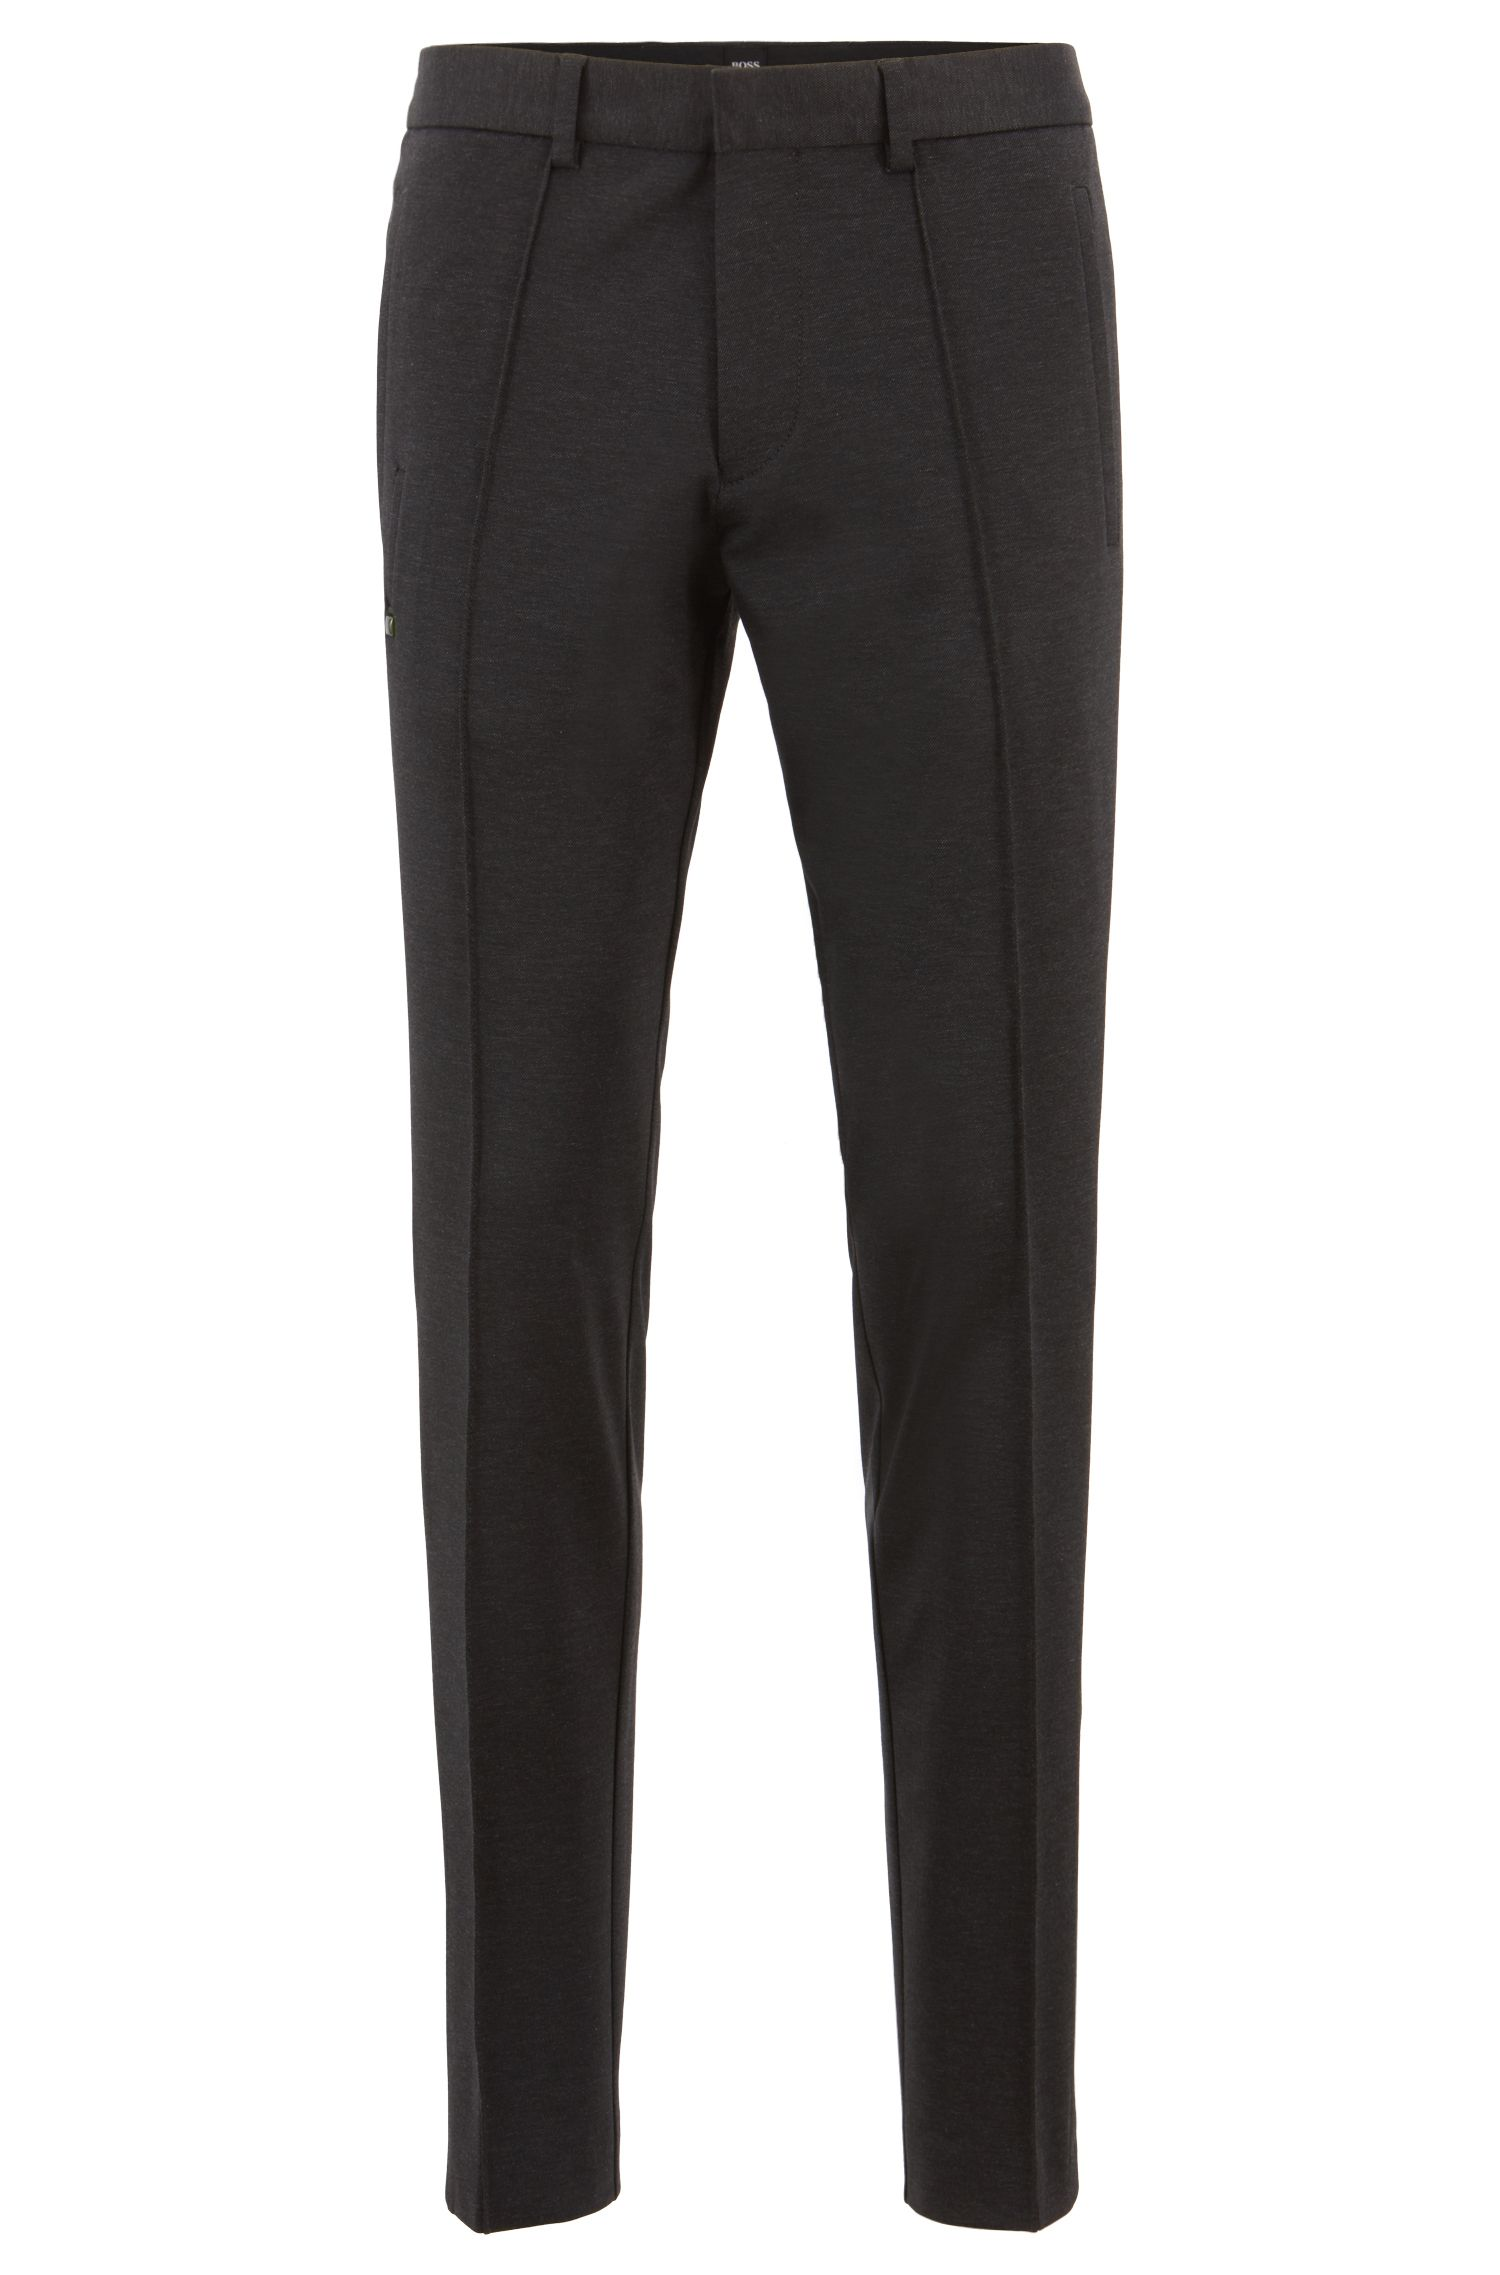 Pantalon Tapered Fit en tissu stretch, à rayures latérales